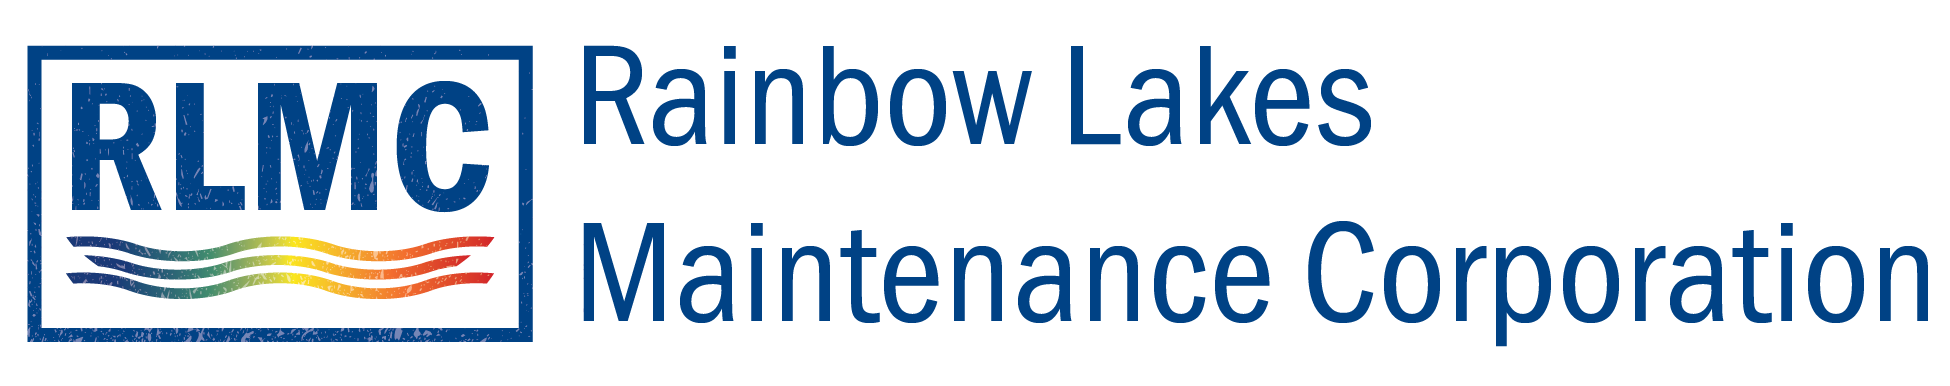 Rainbow Lakes Maintenance Corporation